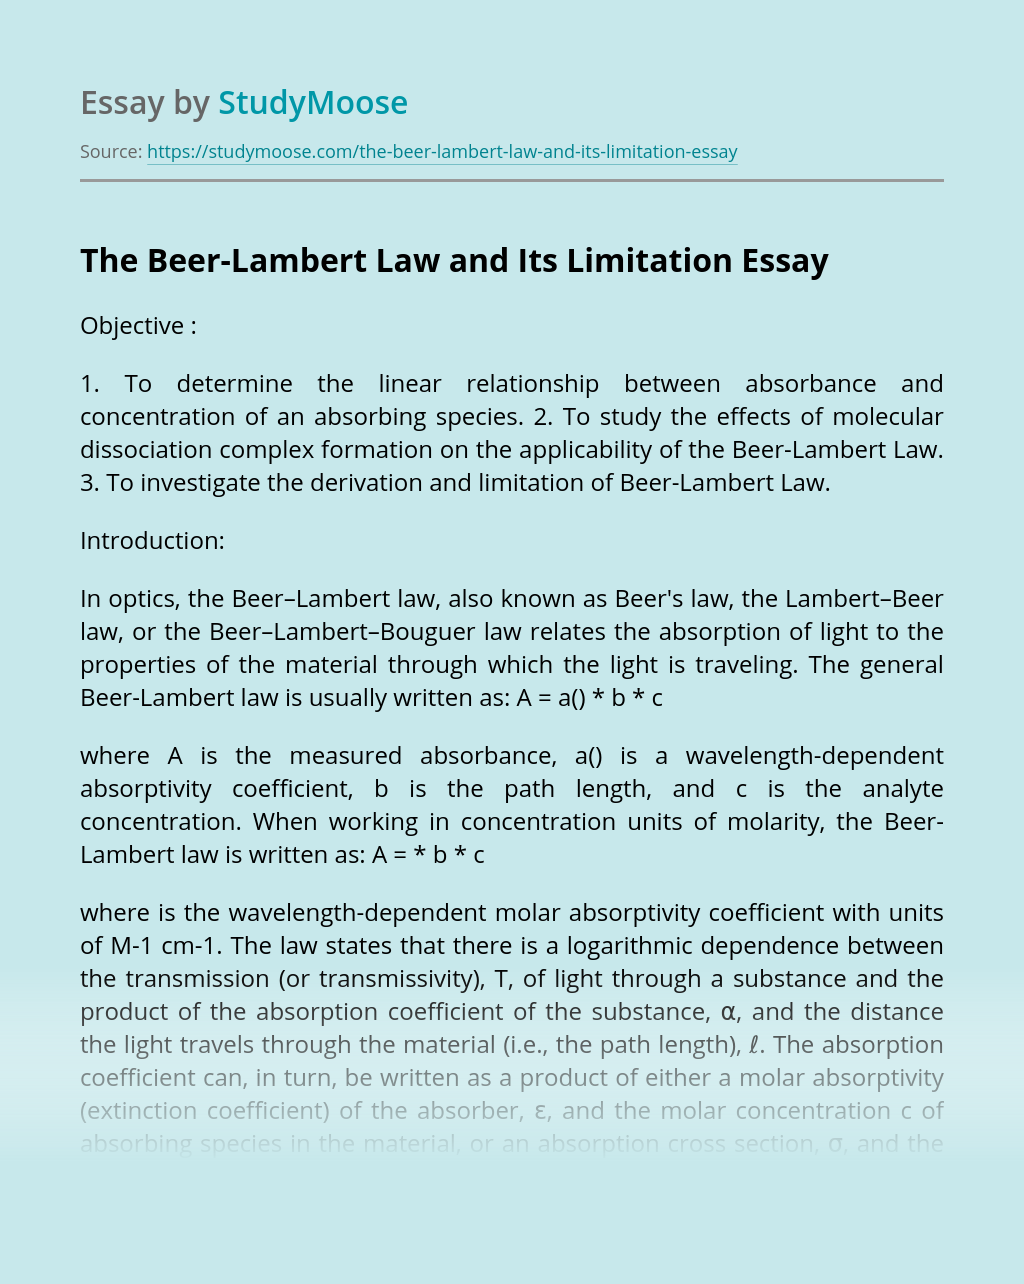 The Beer-Lambert Law and Its Limitation